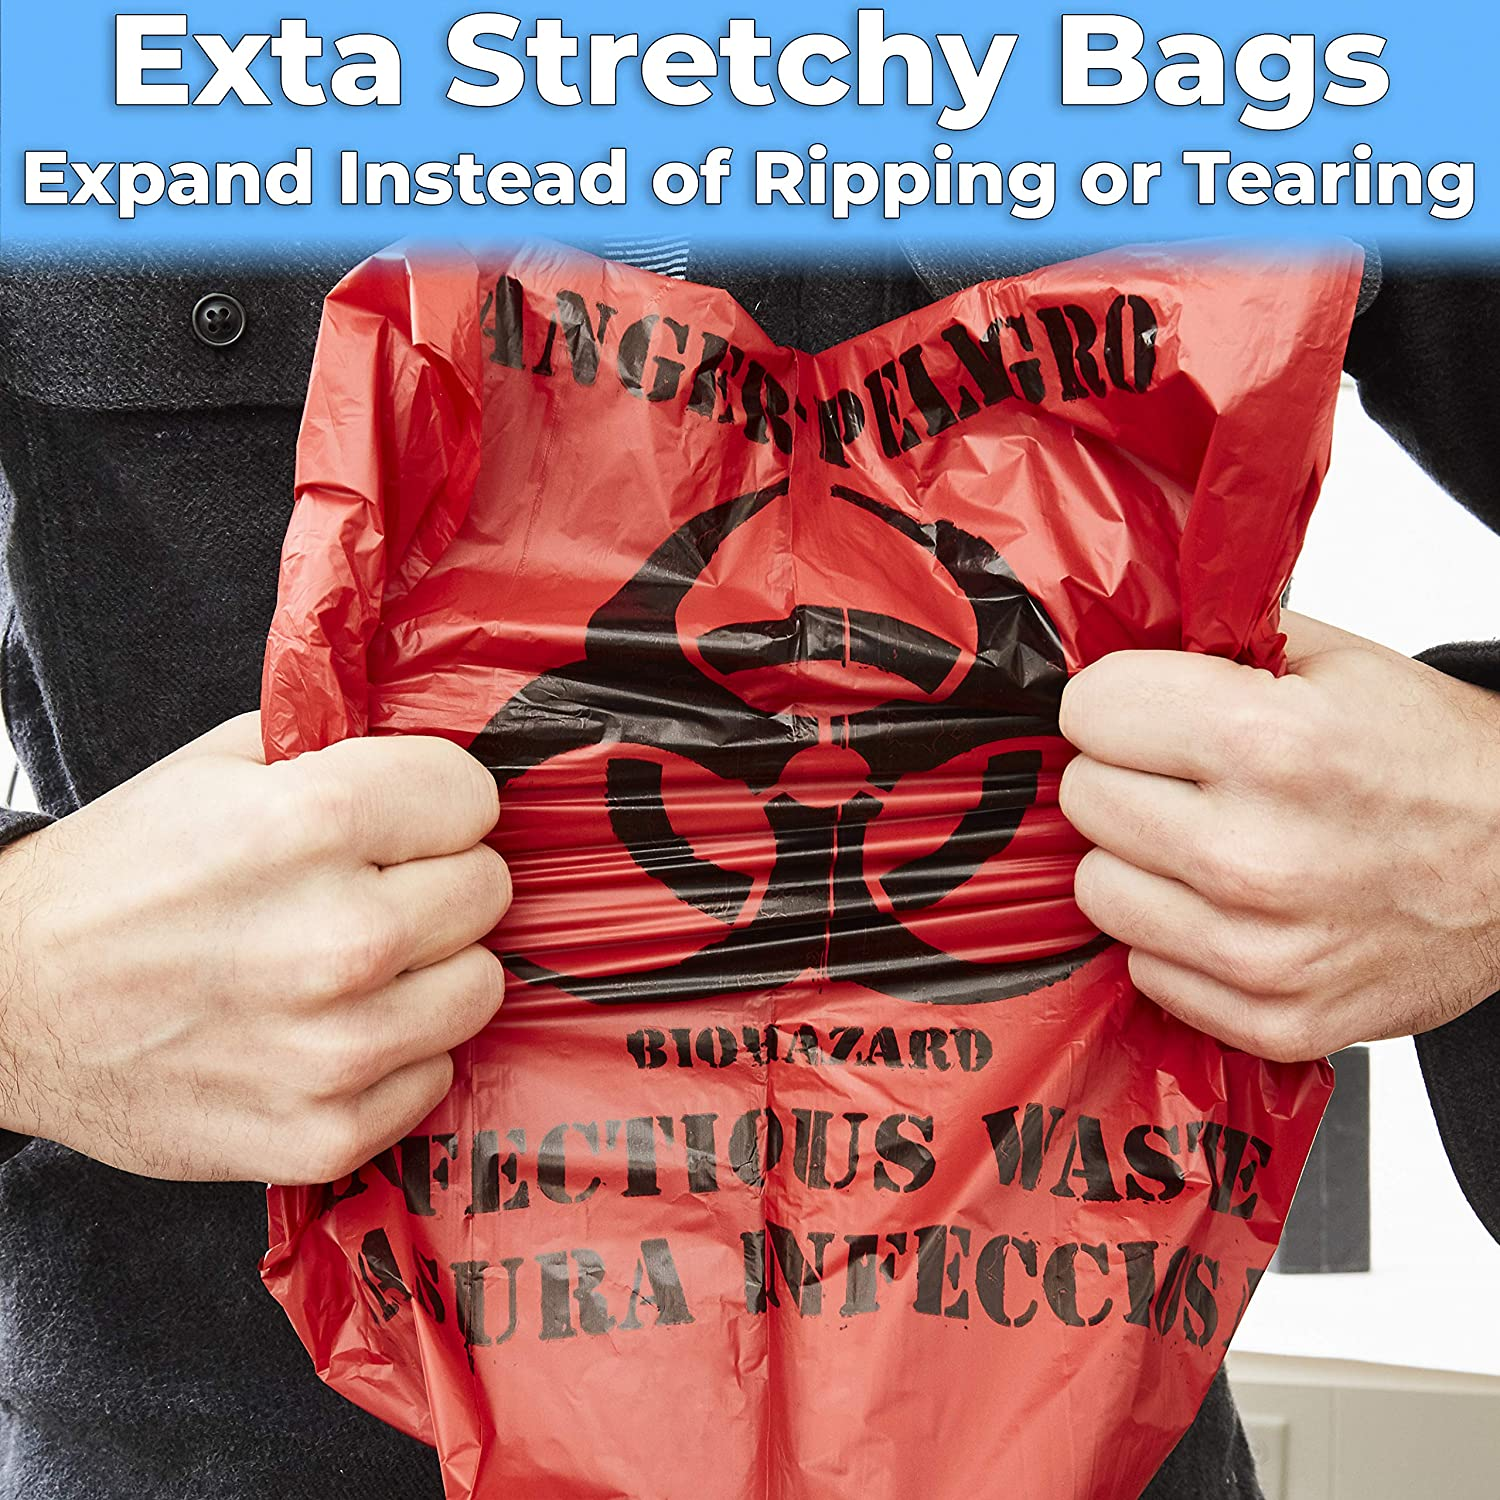 miniature 7 - 10 Gallon Biohazard Bag for Infectious Waste Trash Liners, Red